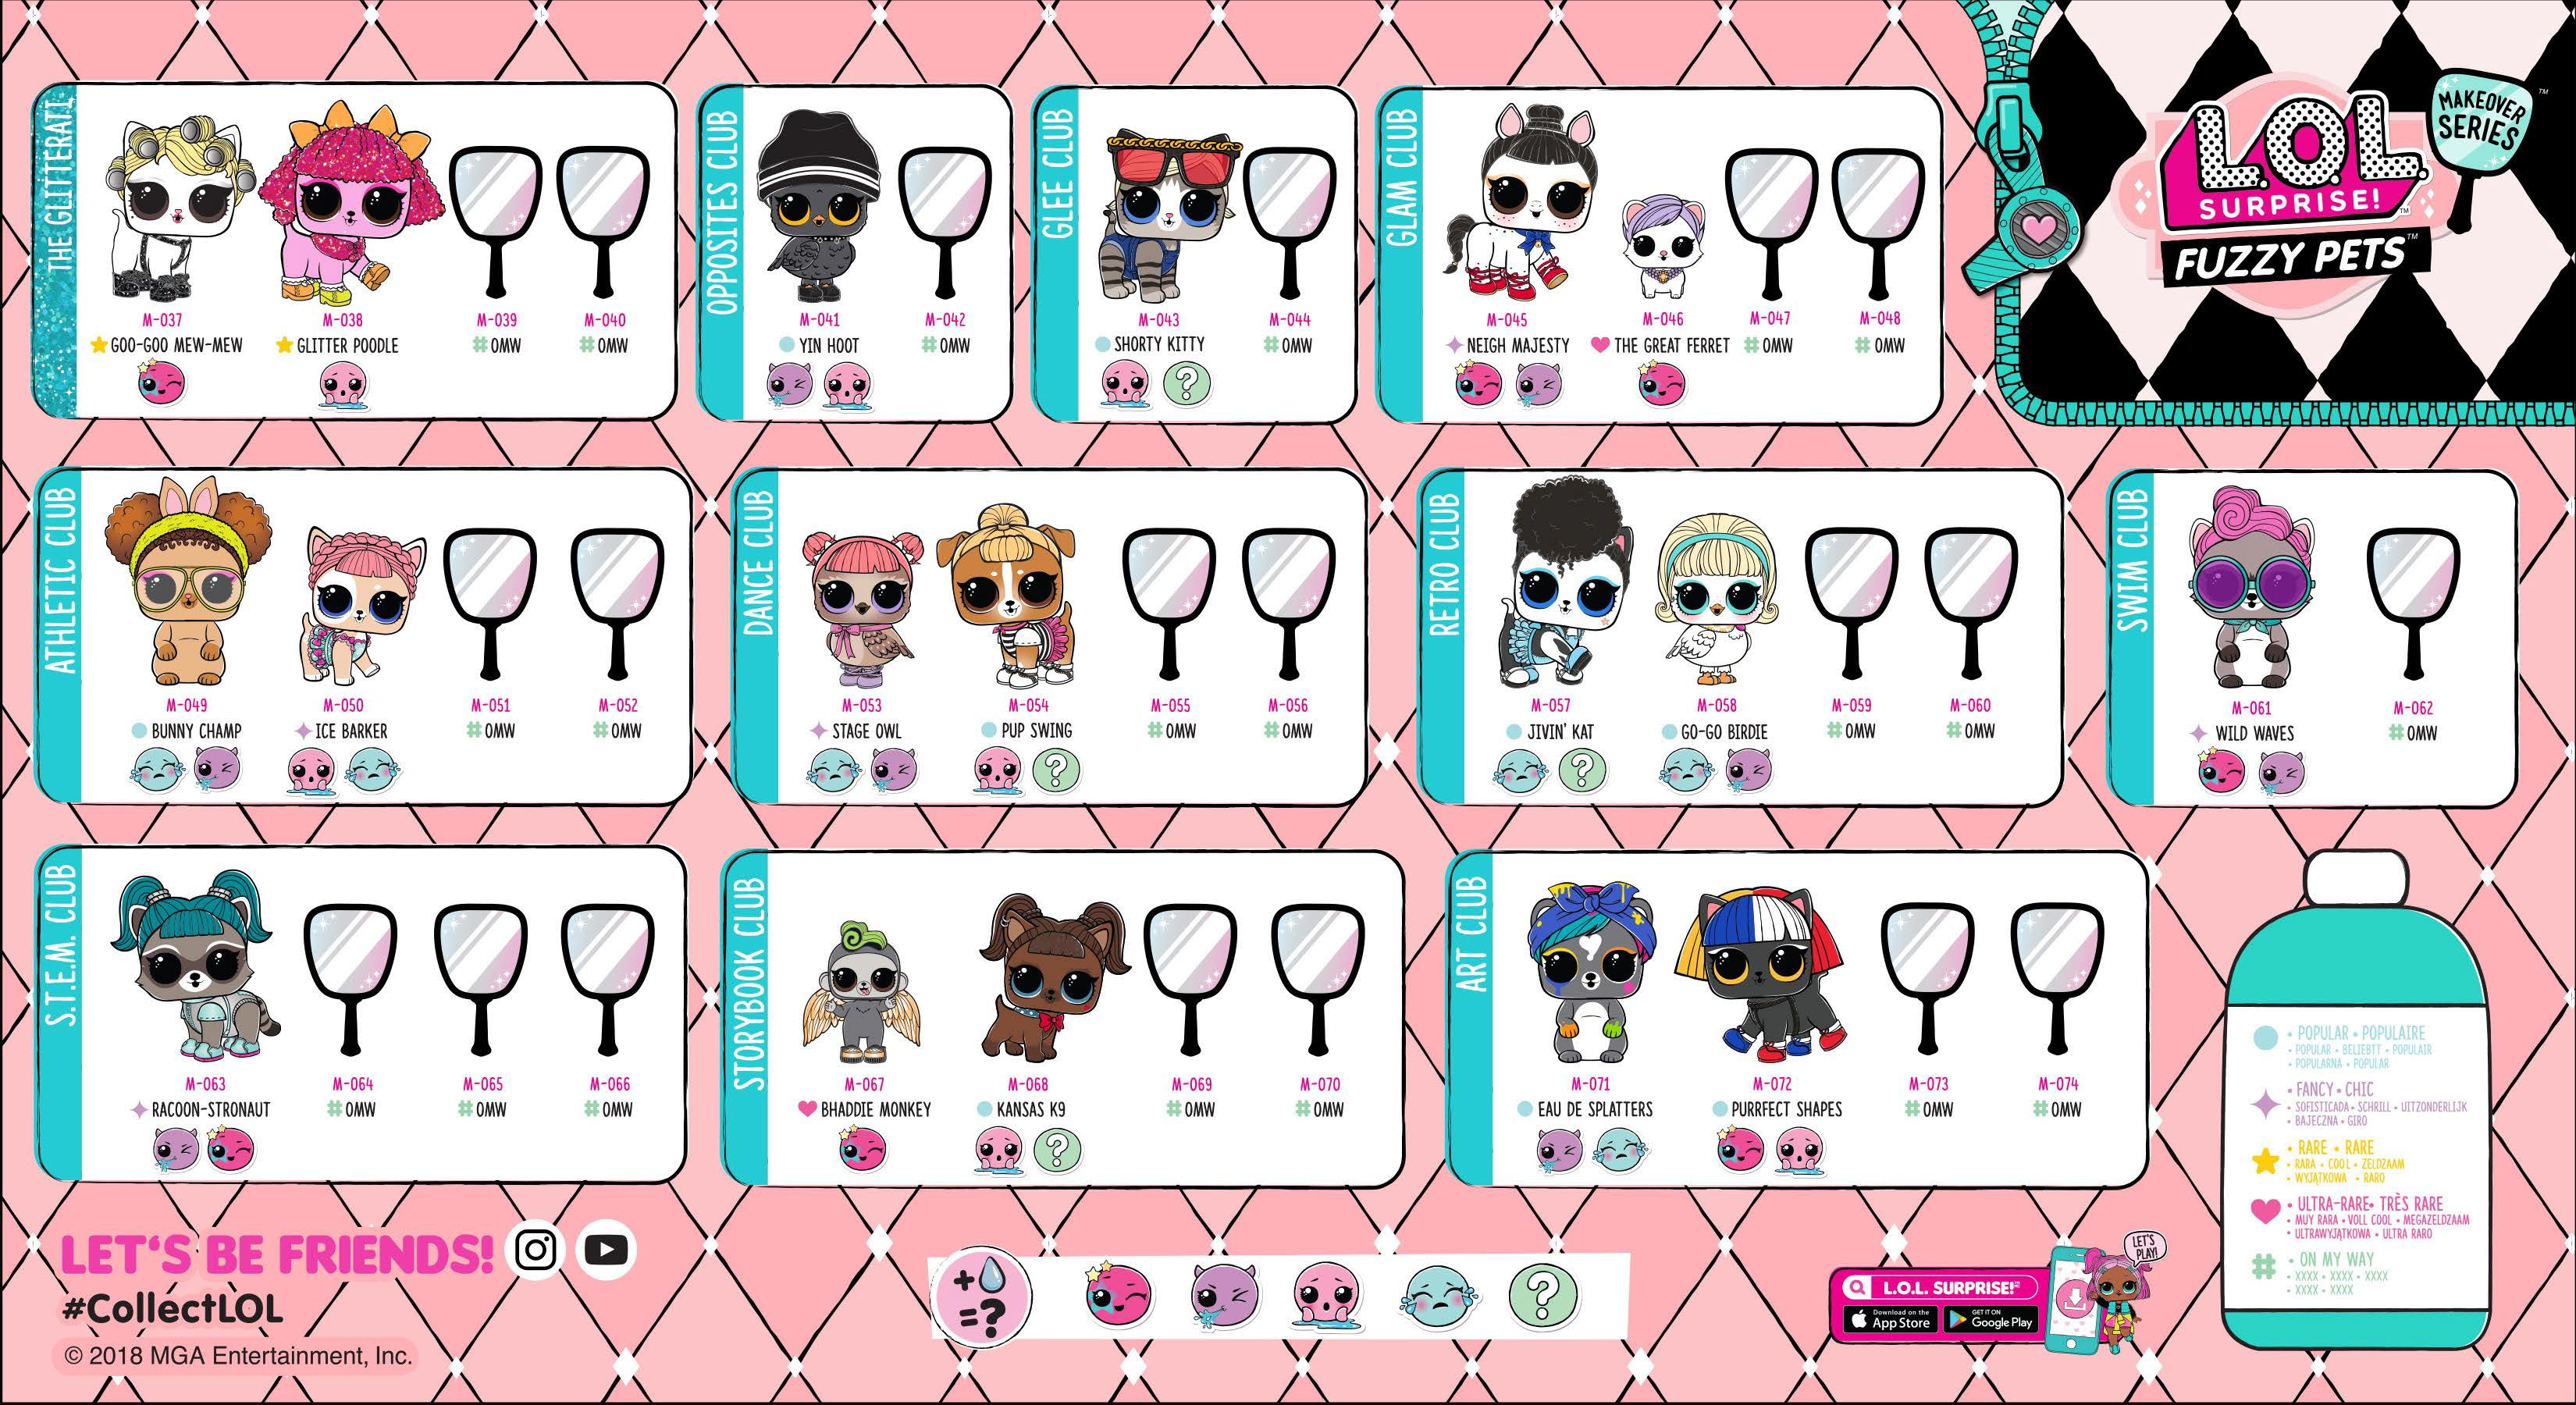 Lol surprise makeover series 5 collector guide list fuzzy pets checklist insert